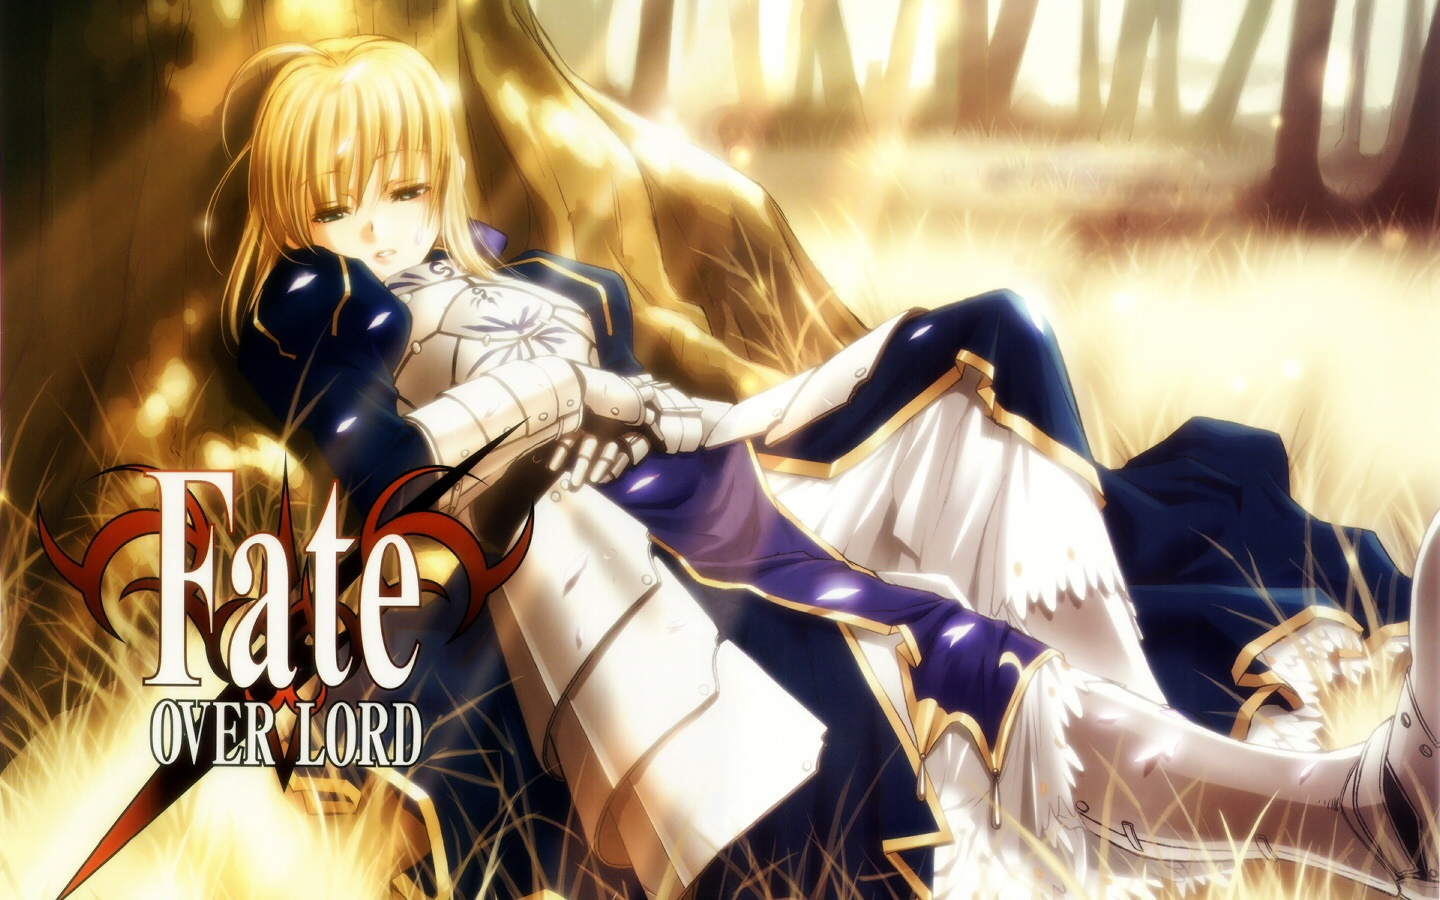 Anime Fate Stay Night Saber Wallpaper 1440x900 Full HD Wallpapers 1440x900